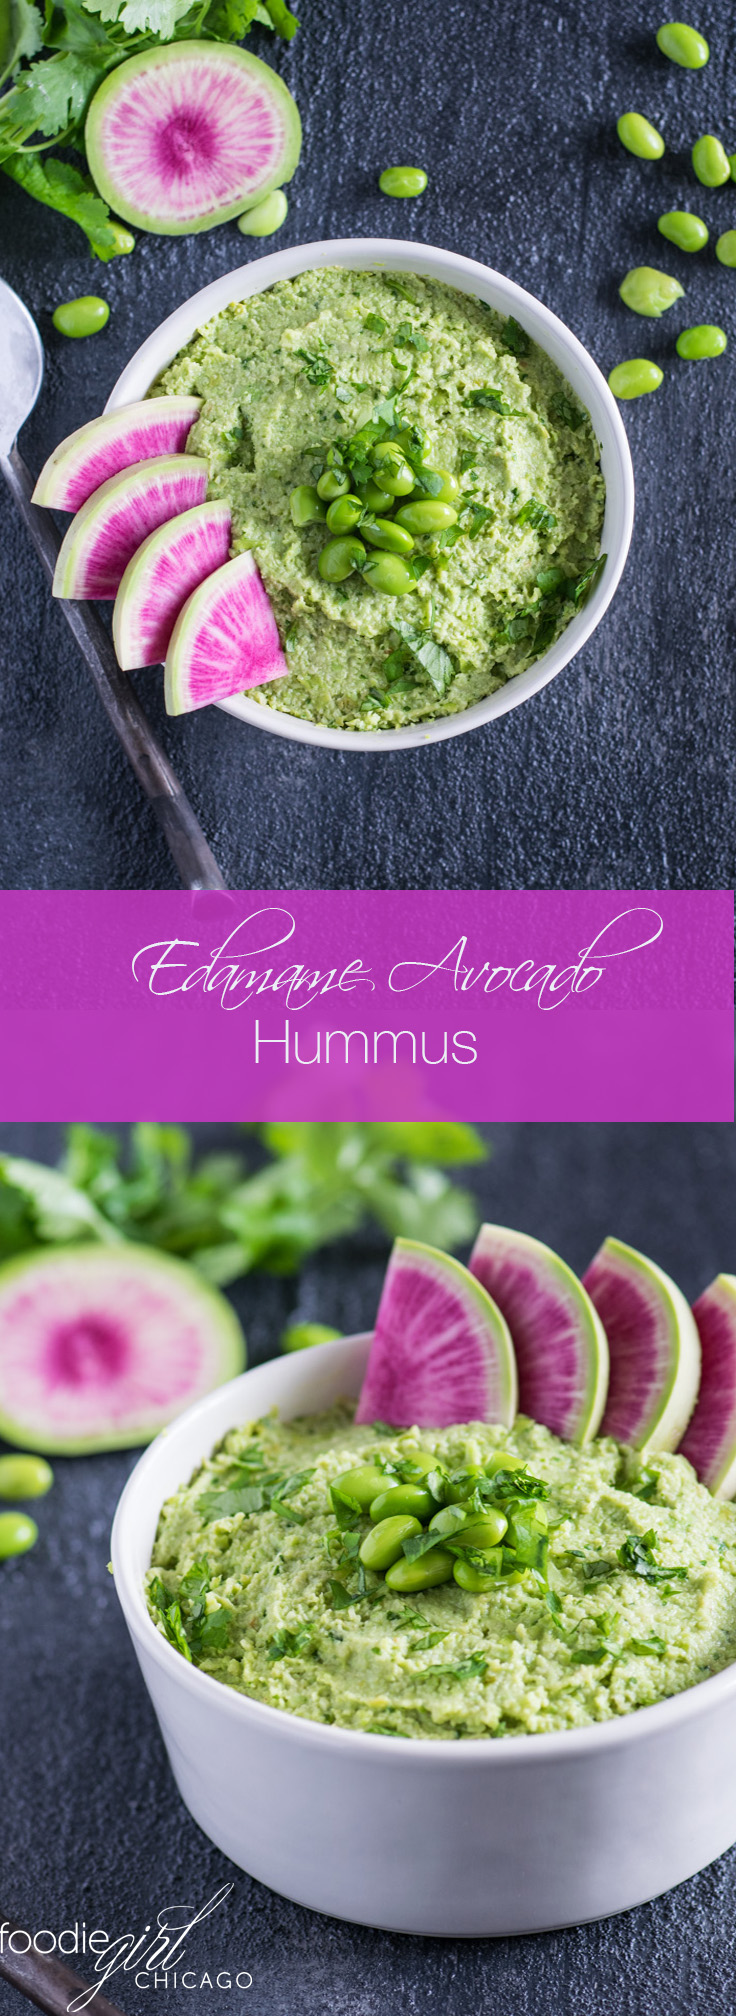 Edamame and avocado combine for a creamy hummus that's perfect for cocktail parties and backyard BBQs!